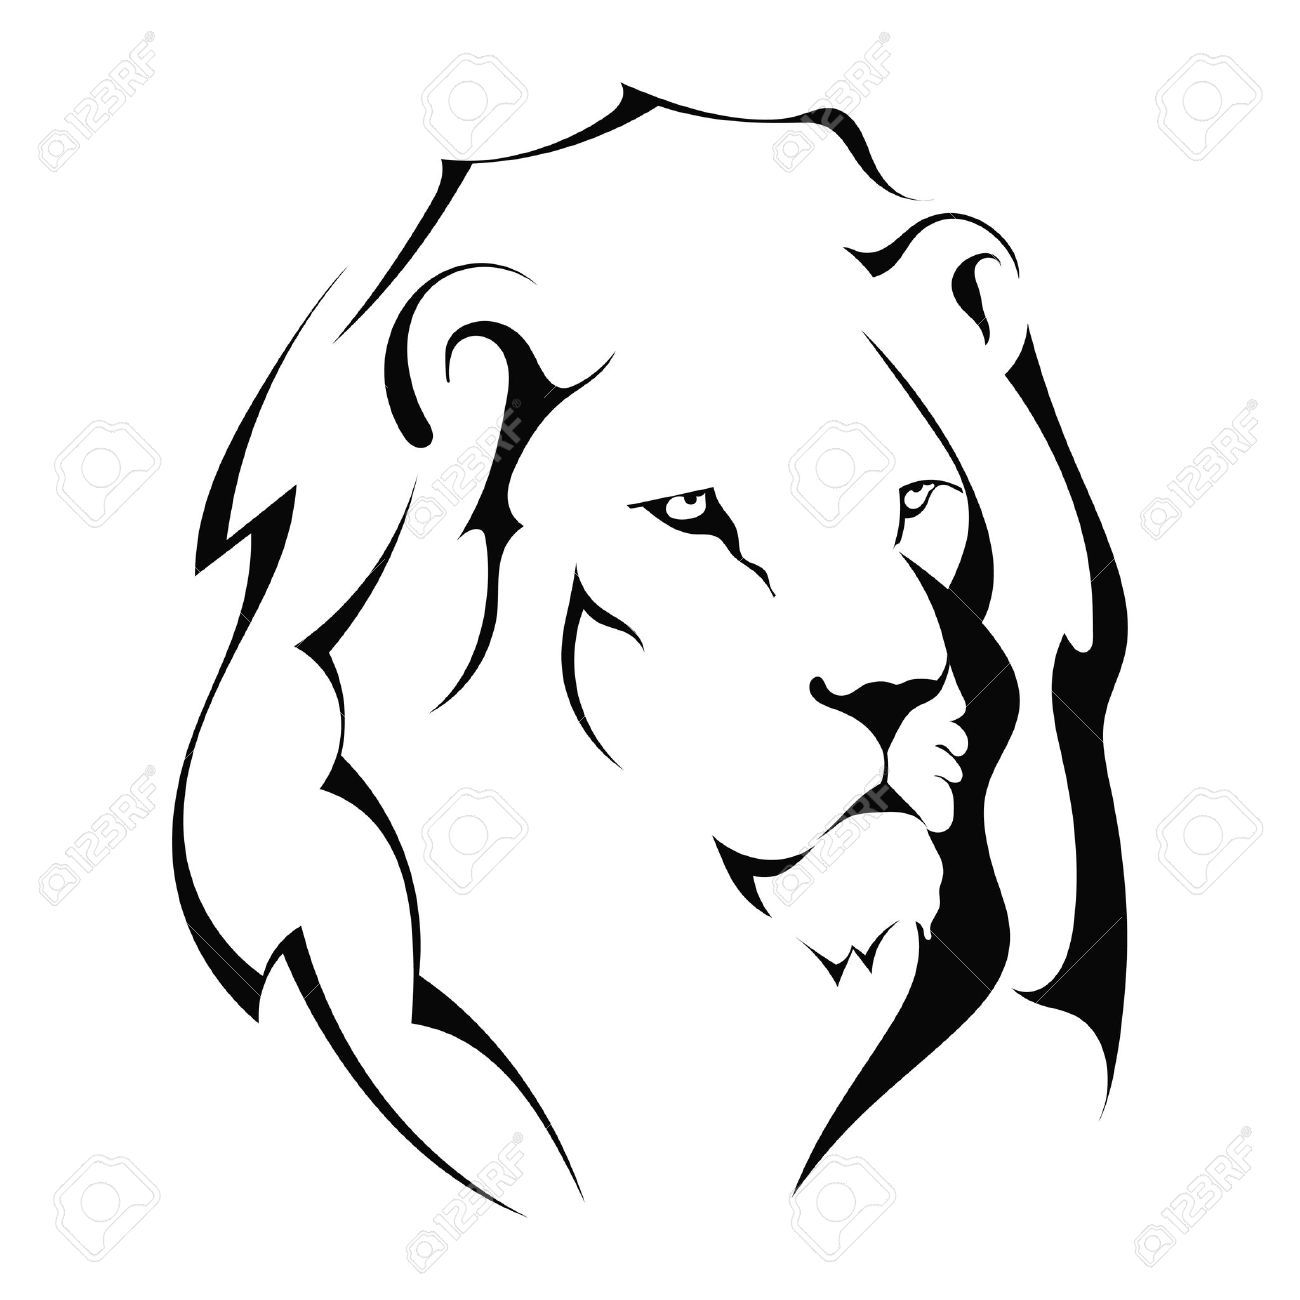 Loin Clipart | Clipart Panda - Free Clipart Images ...